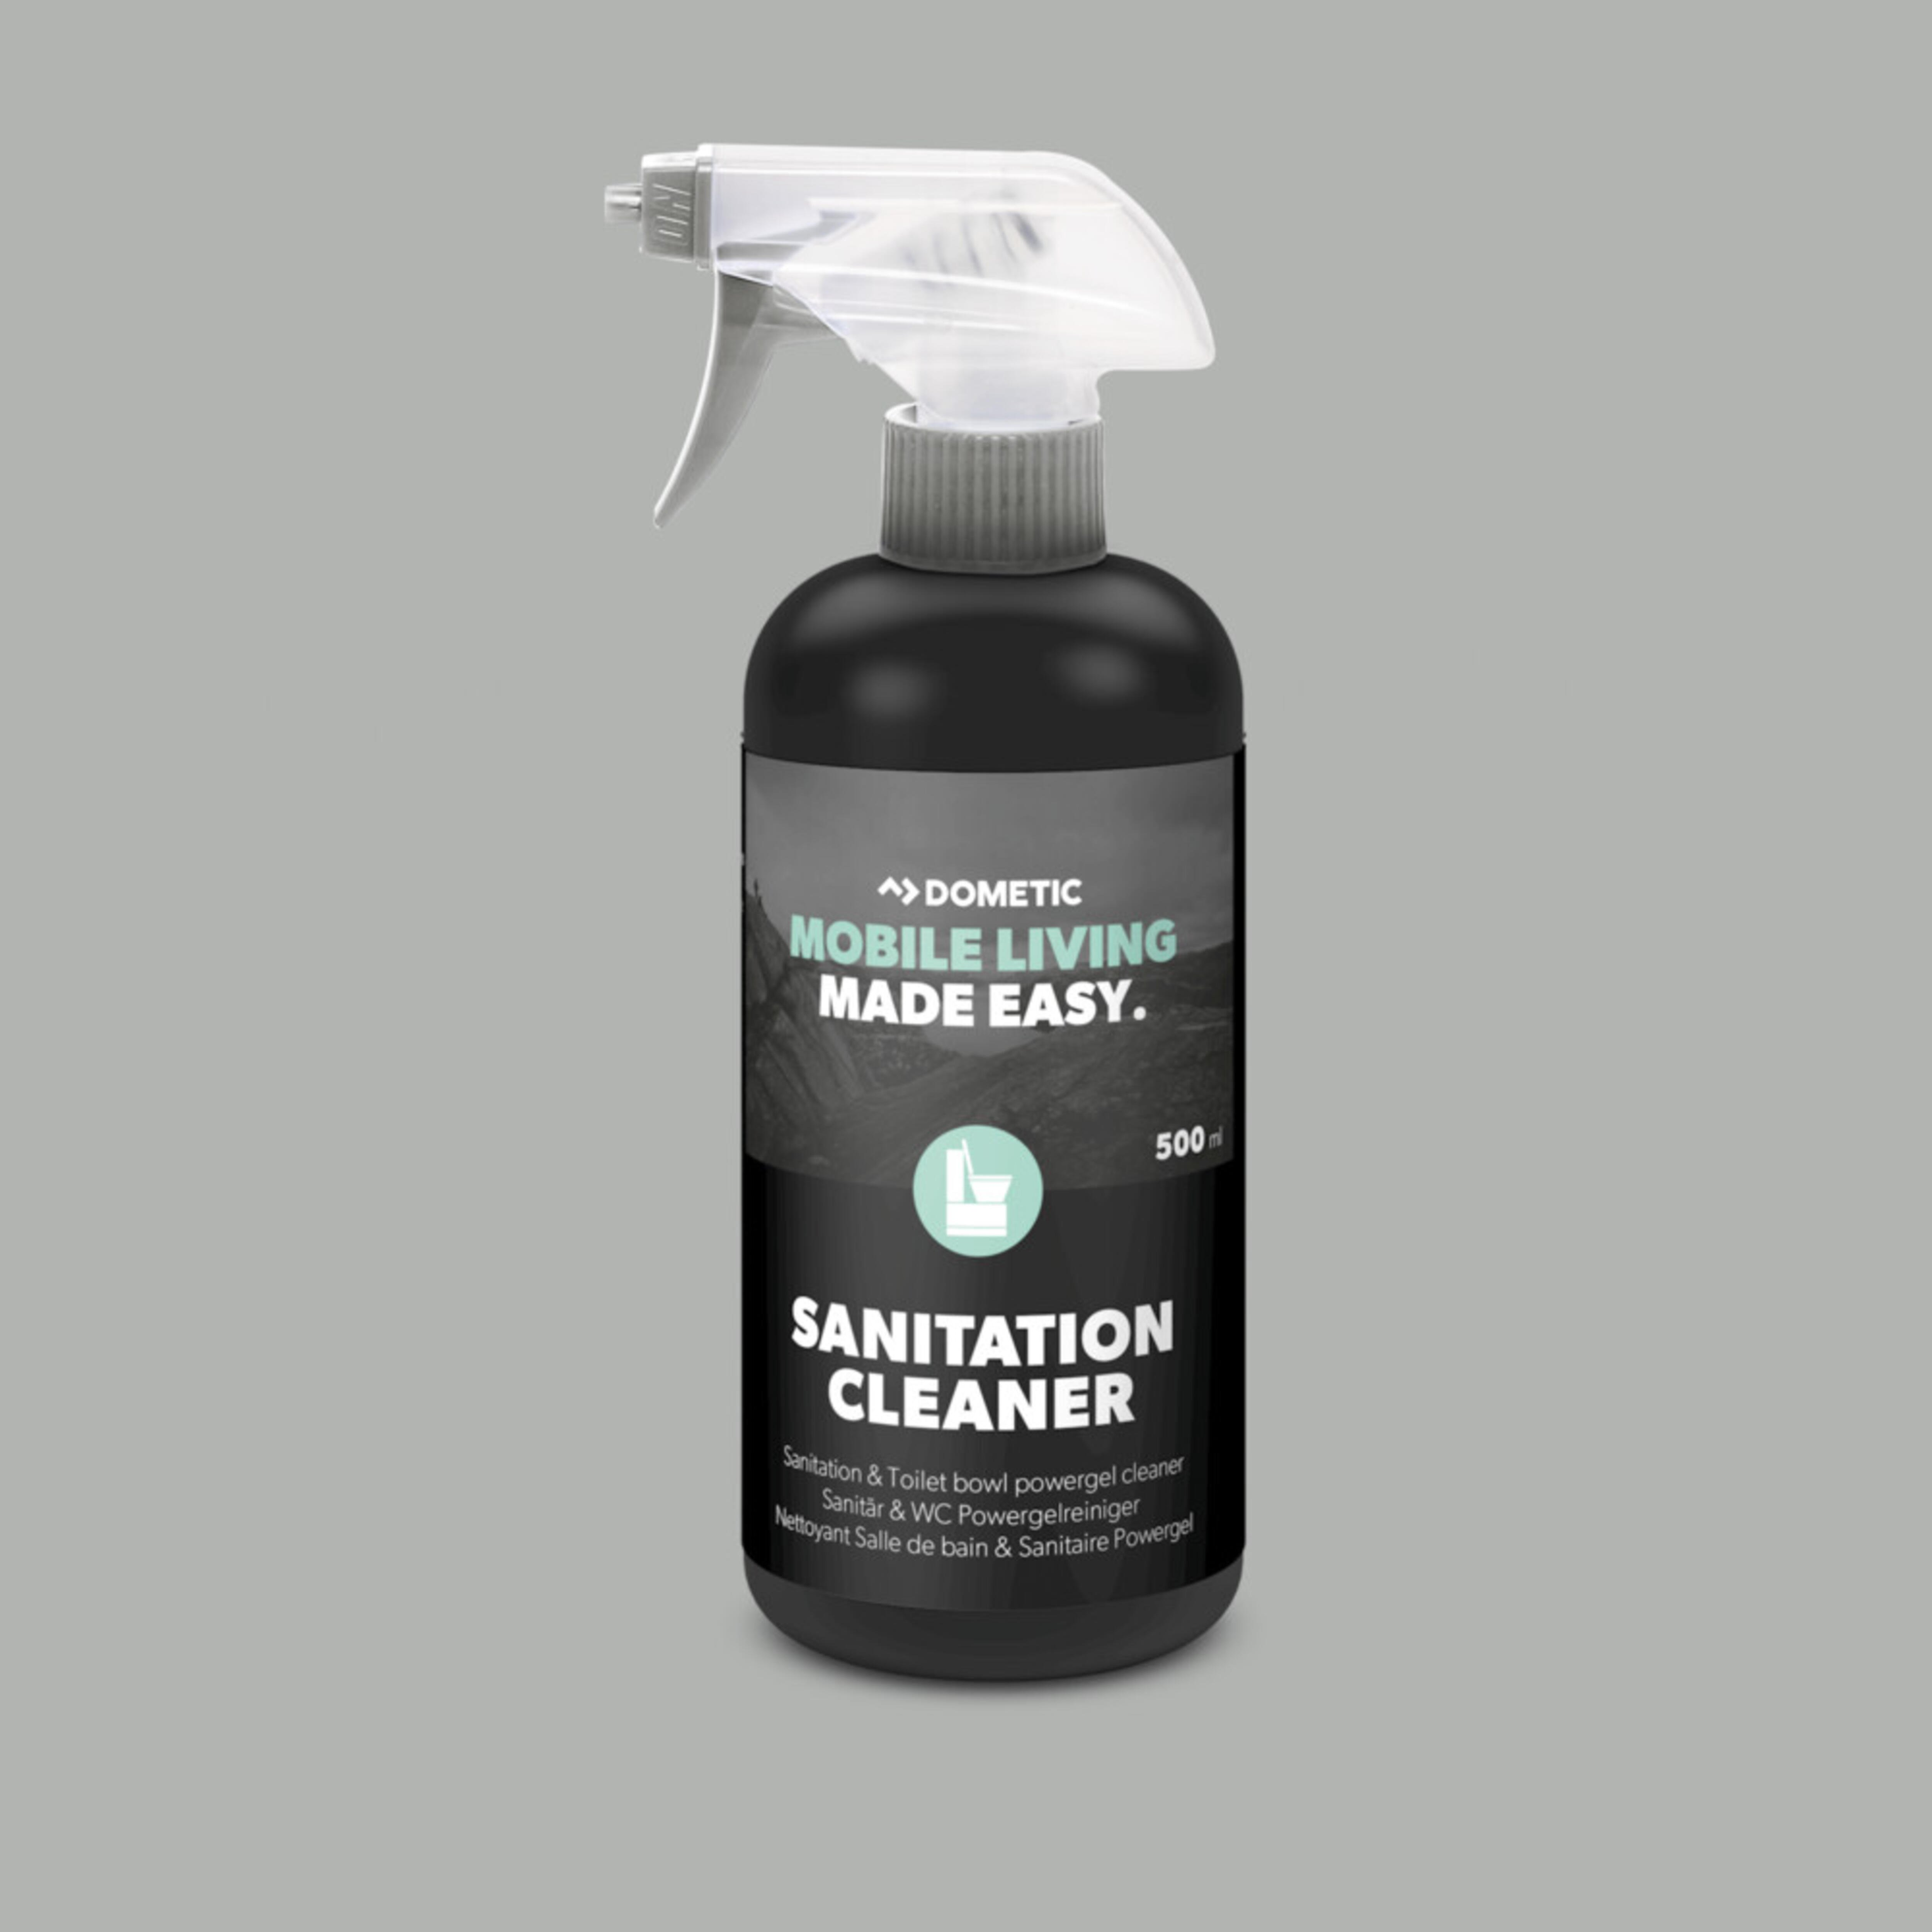 Dometic Sanitation Cleaner